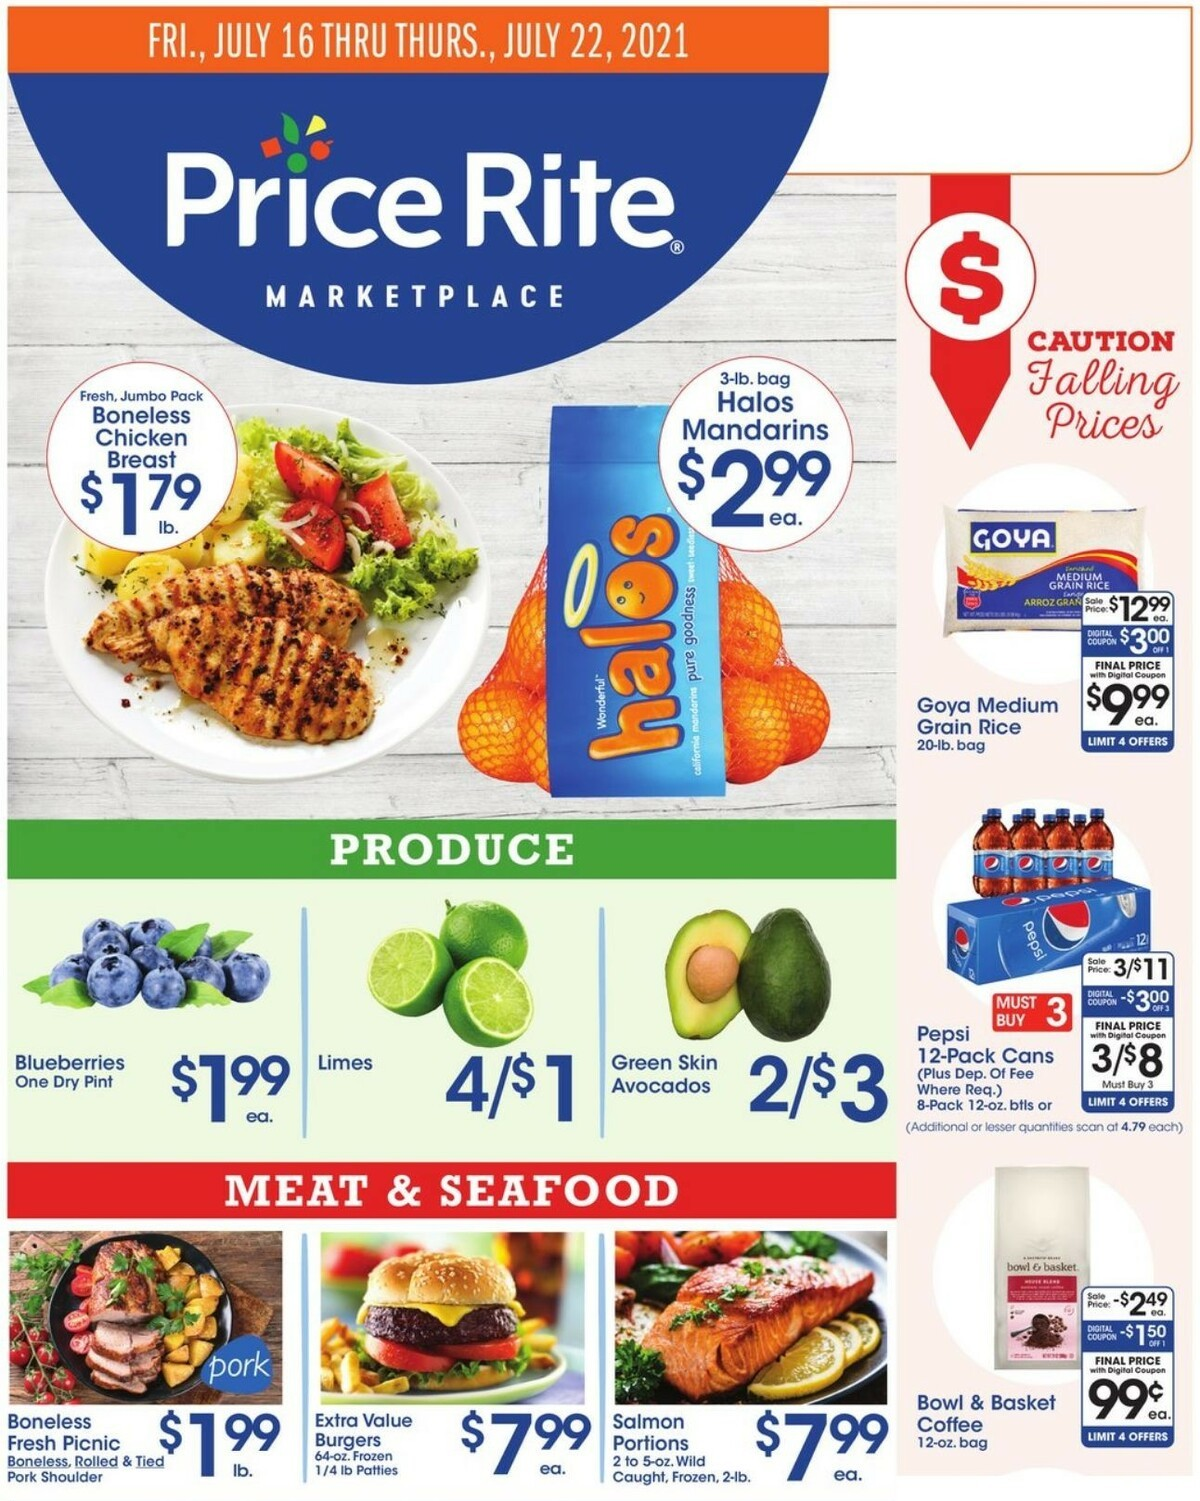 Price Rite Weekly Ad from July 16